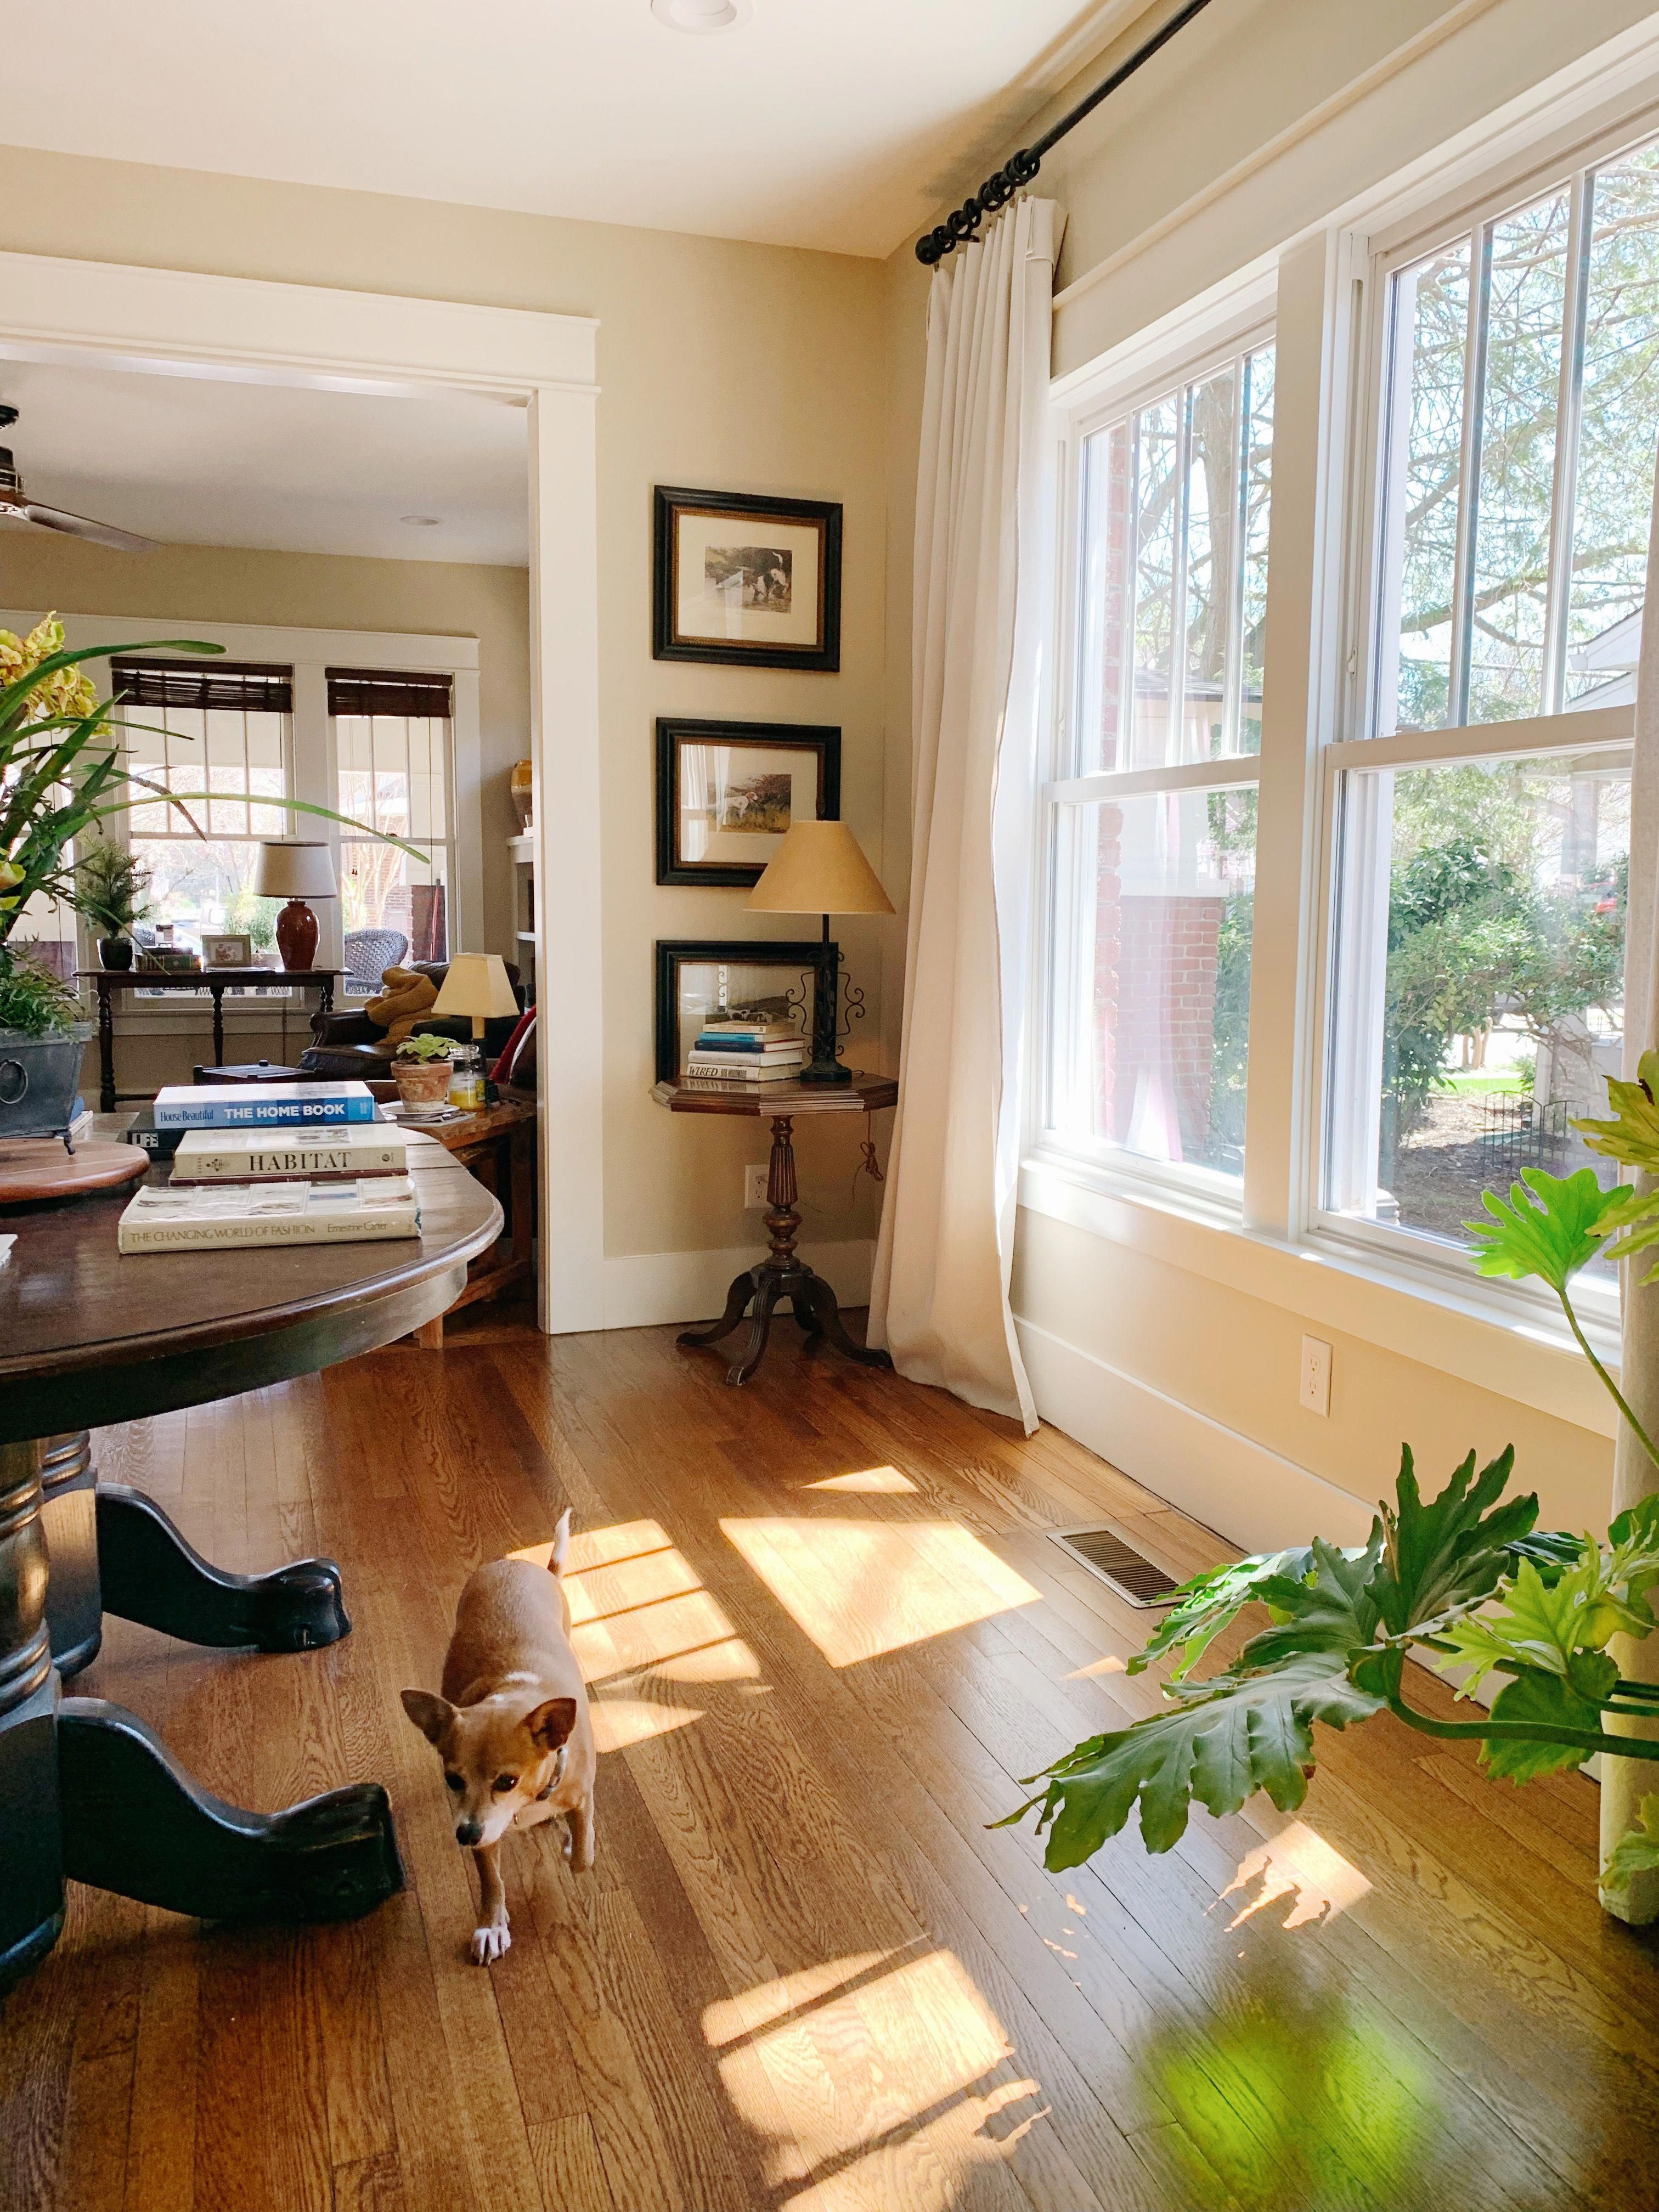 Small Spaces Are Always A Difficulty To Style Specifically Small Dining Areas Considered Th Bungalow Living Room Craftsman Bungalow Interior Bungalow Interiors Craftsman bungalow living room